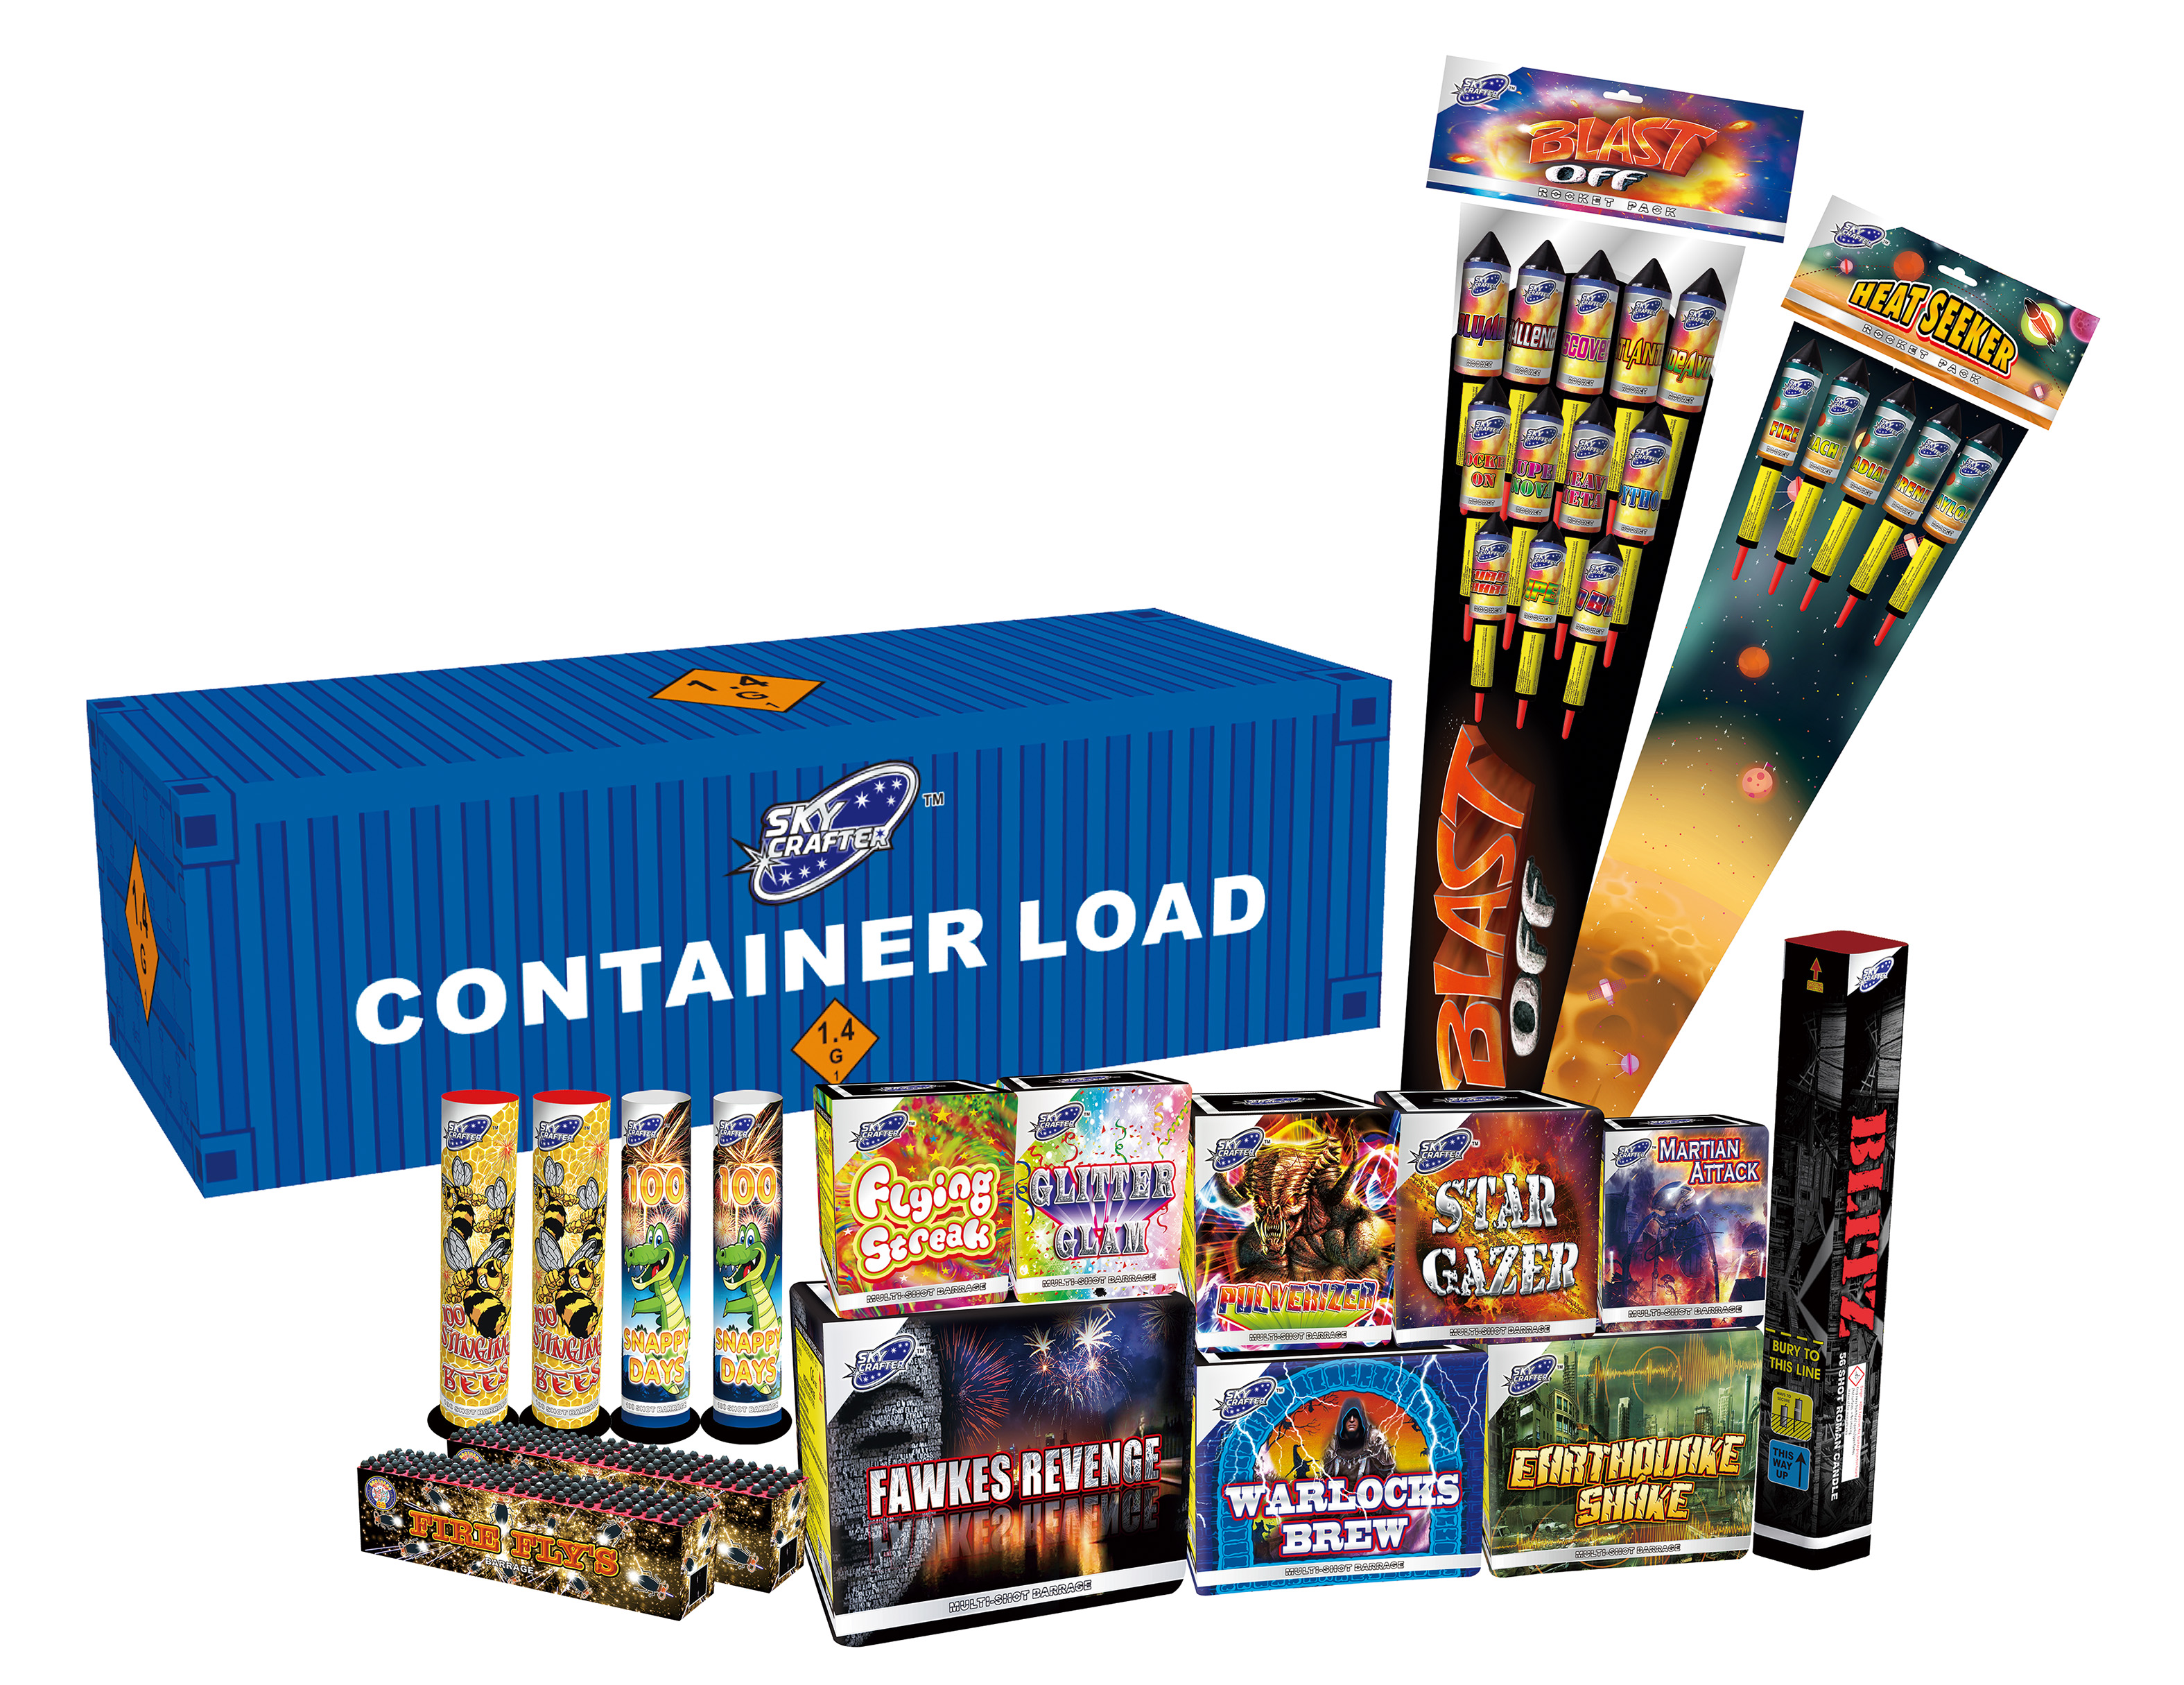 The Container Load Image